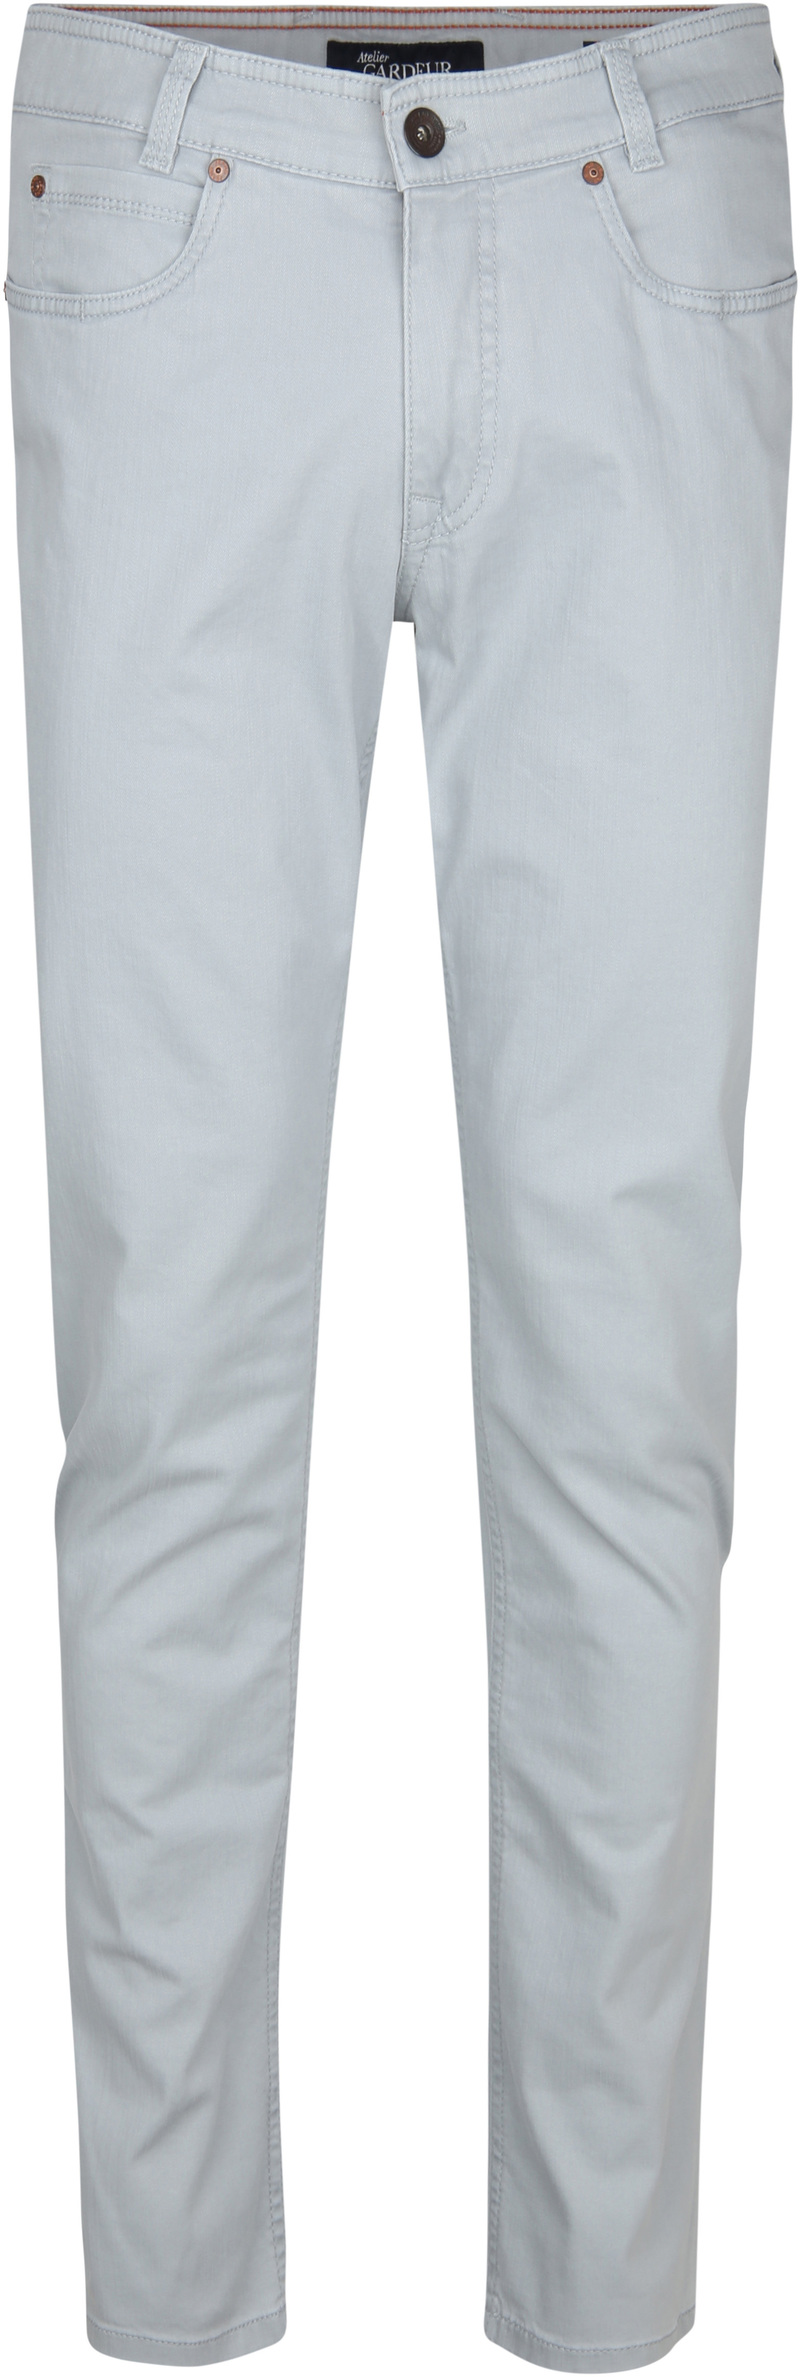 Gardeur Batu Pants Light Grey photo 0